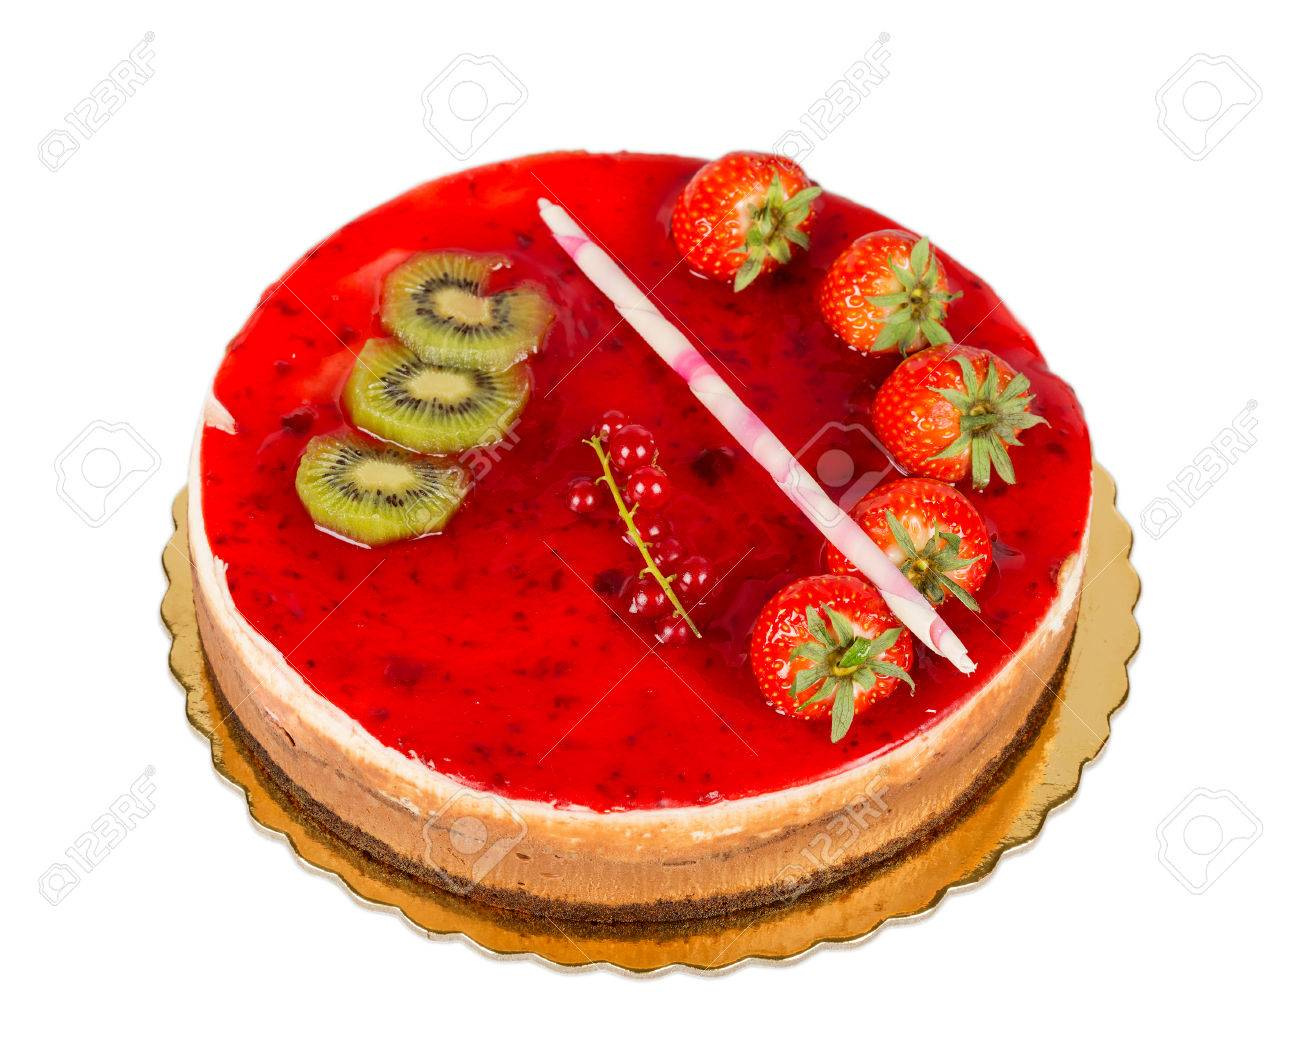 Strawberry Cake With Jelly Topping And Figs Isolated Stock Photo 23290702